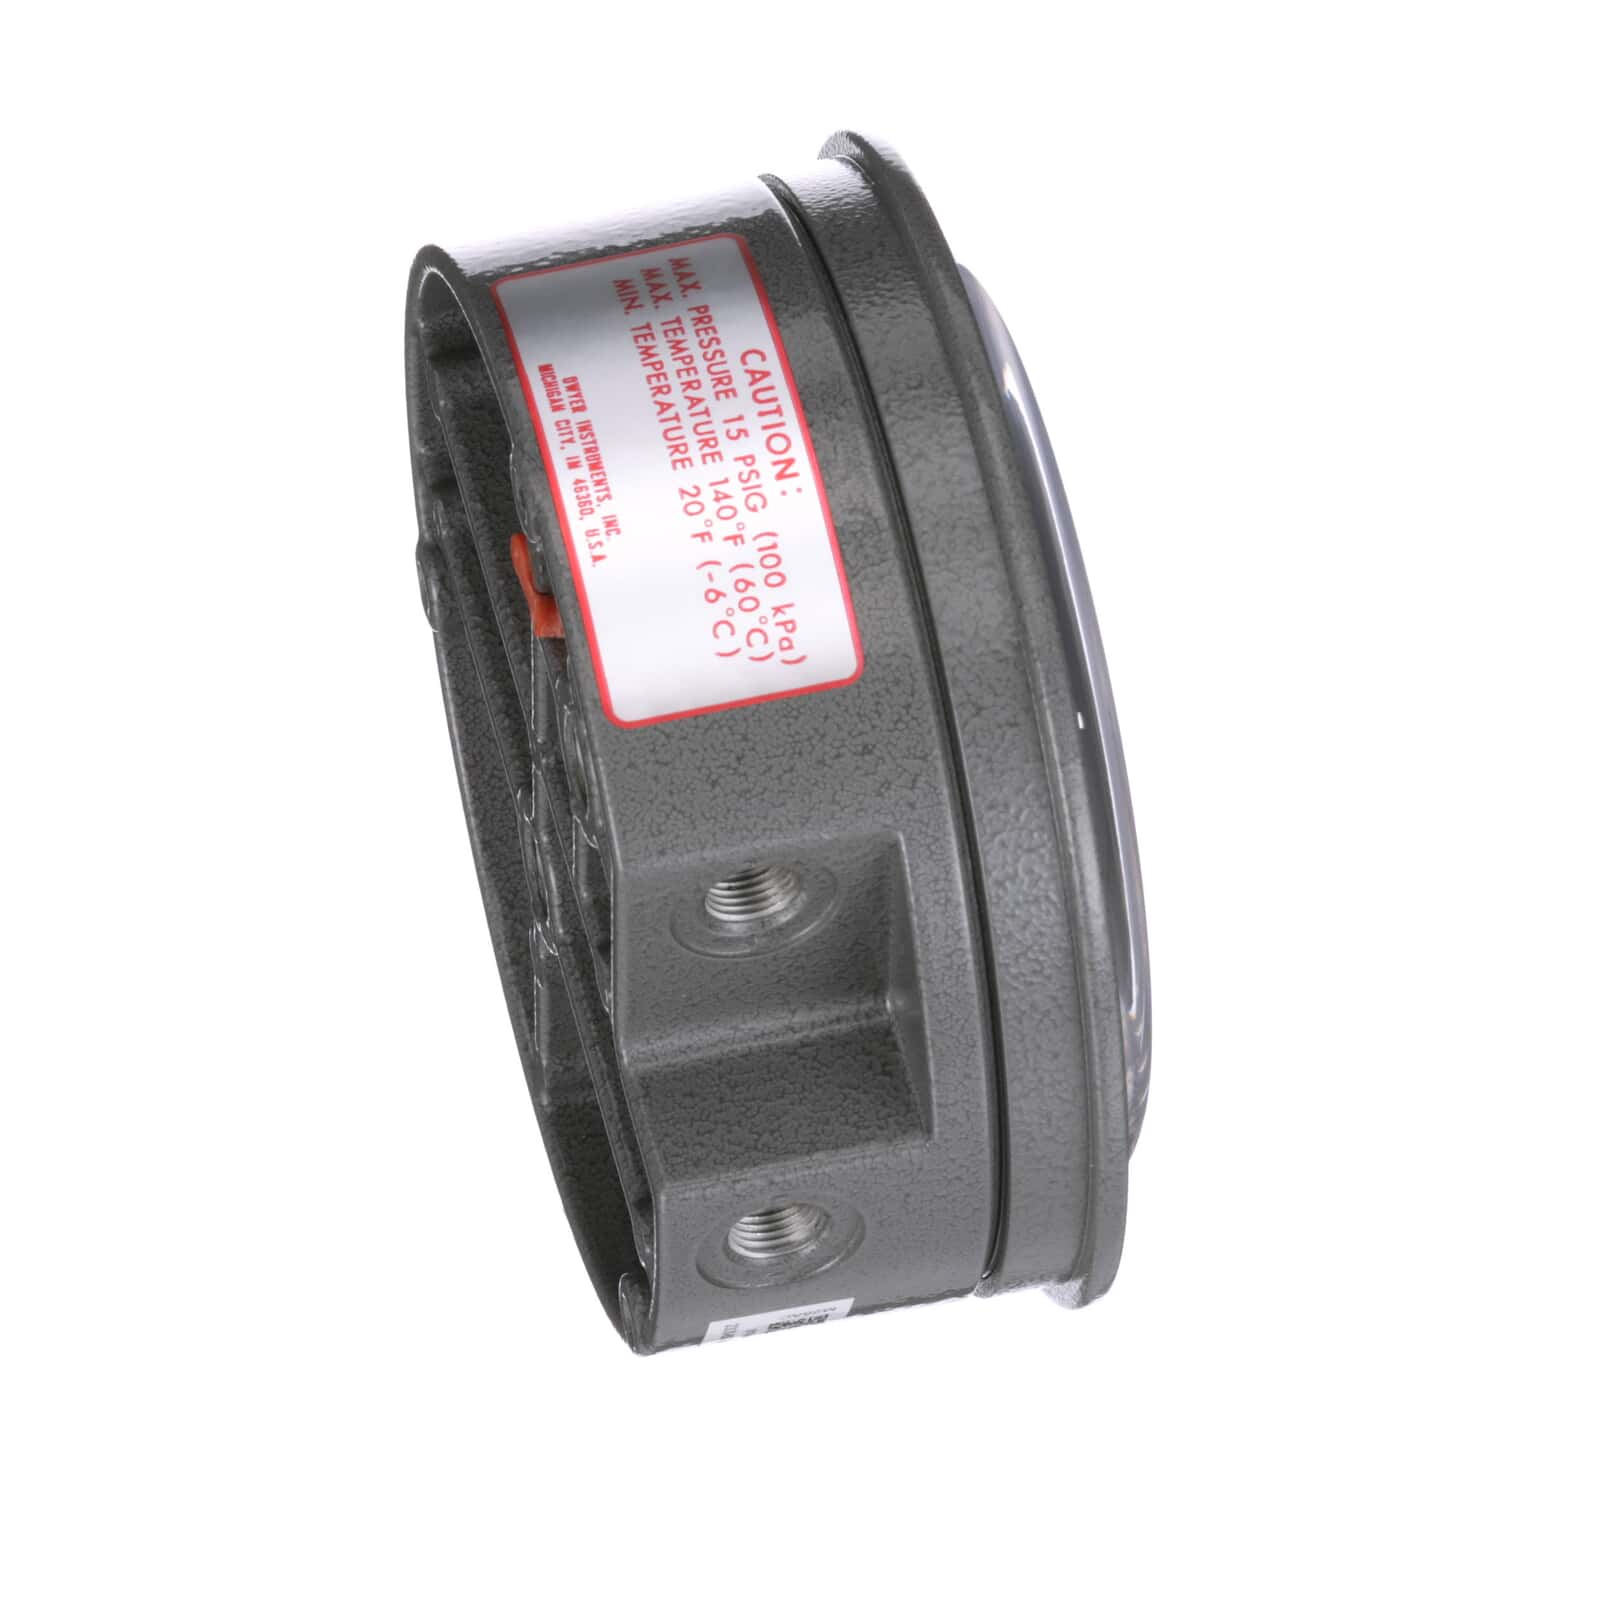 Series 2000 Magnehelic Differential Pressure Gages Is A Versatile The Inside Of Generator Inlet Box With Connections Made Click Low Gauge Wide Choice 81 Models And 27 Options To